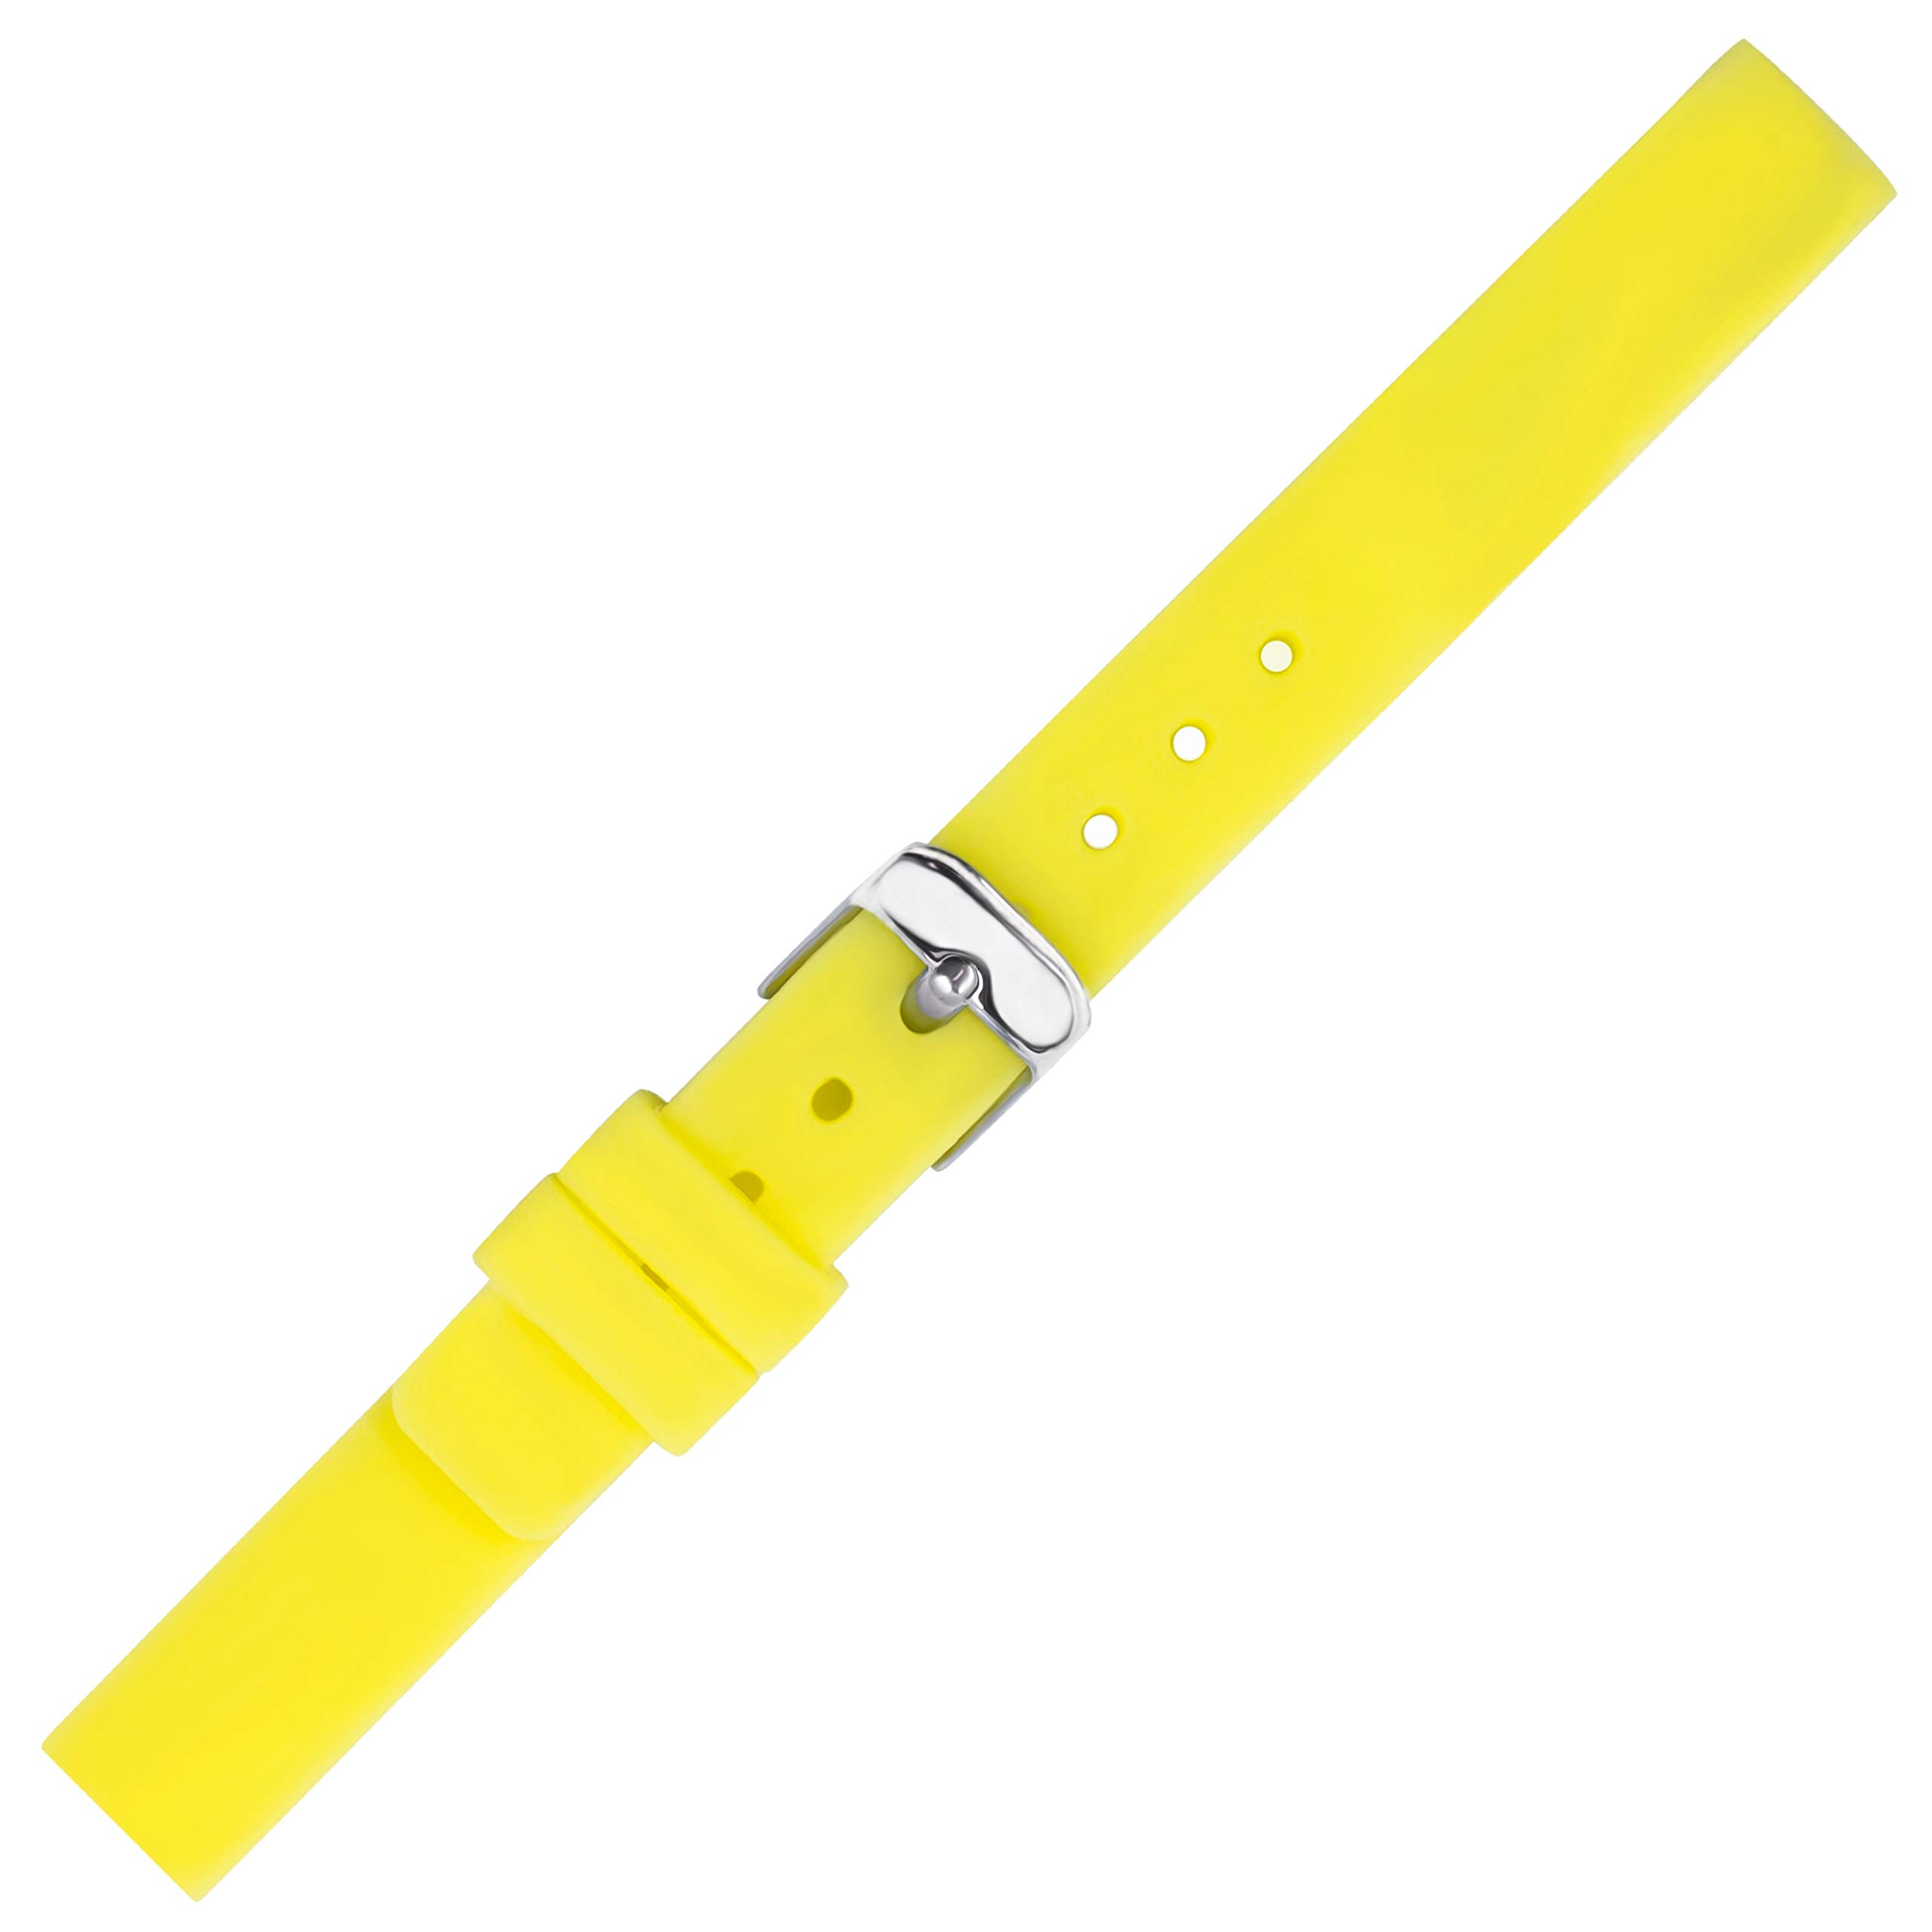 Kiiso Boy's and Gir's Glow in The Dark Siicone Sports Watch Bands 12mm,14mm,16mm (12mm, neon Yellow) by Kiiso